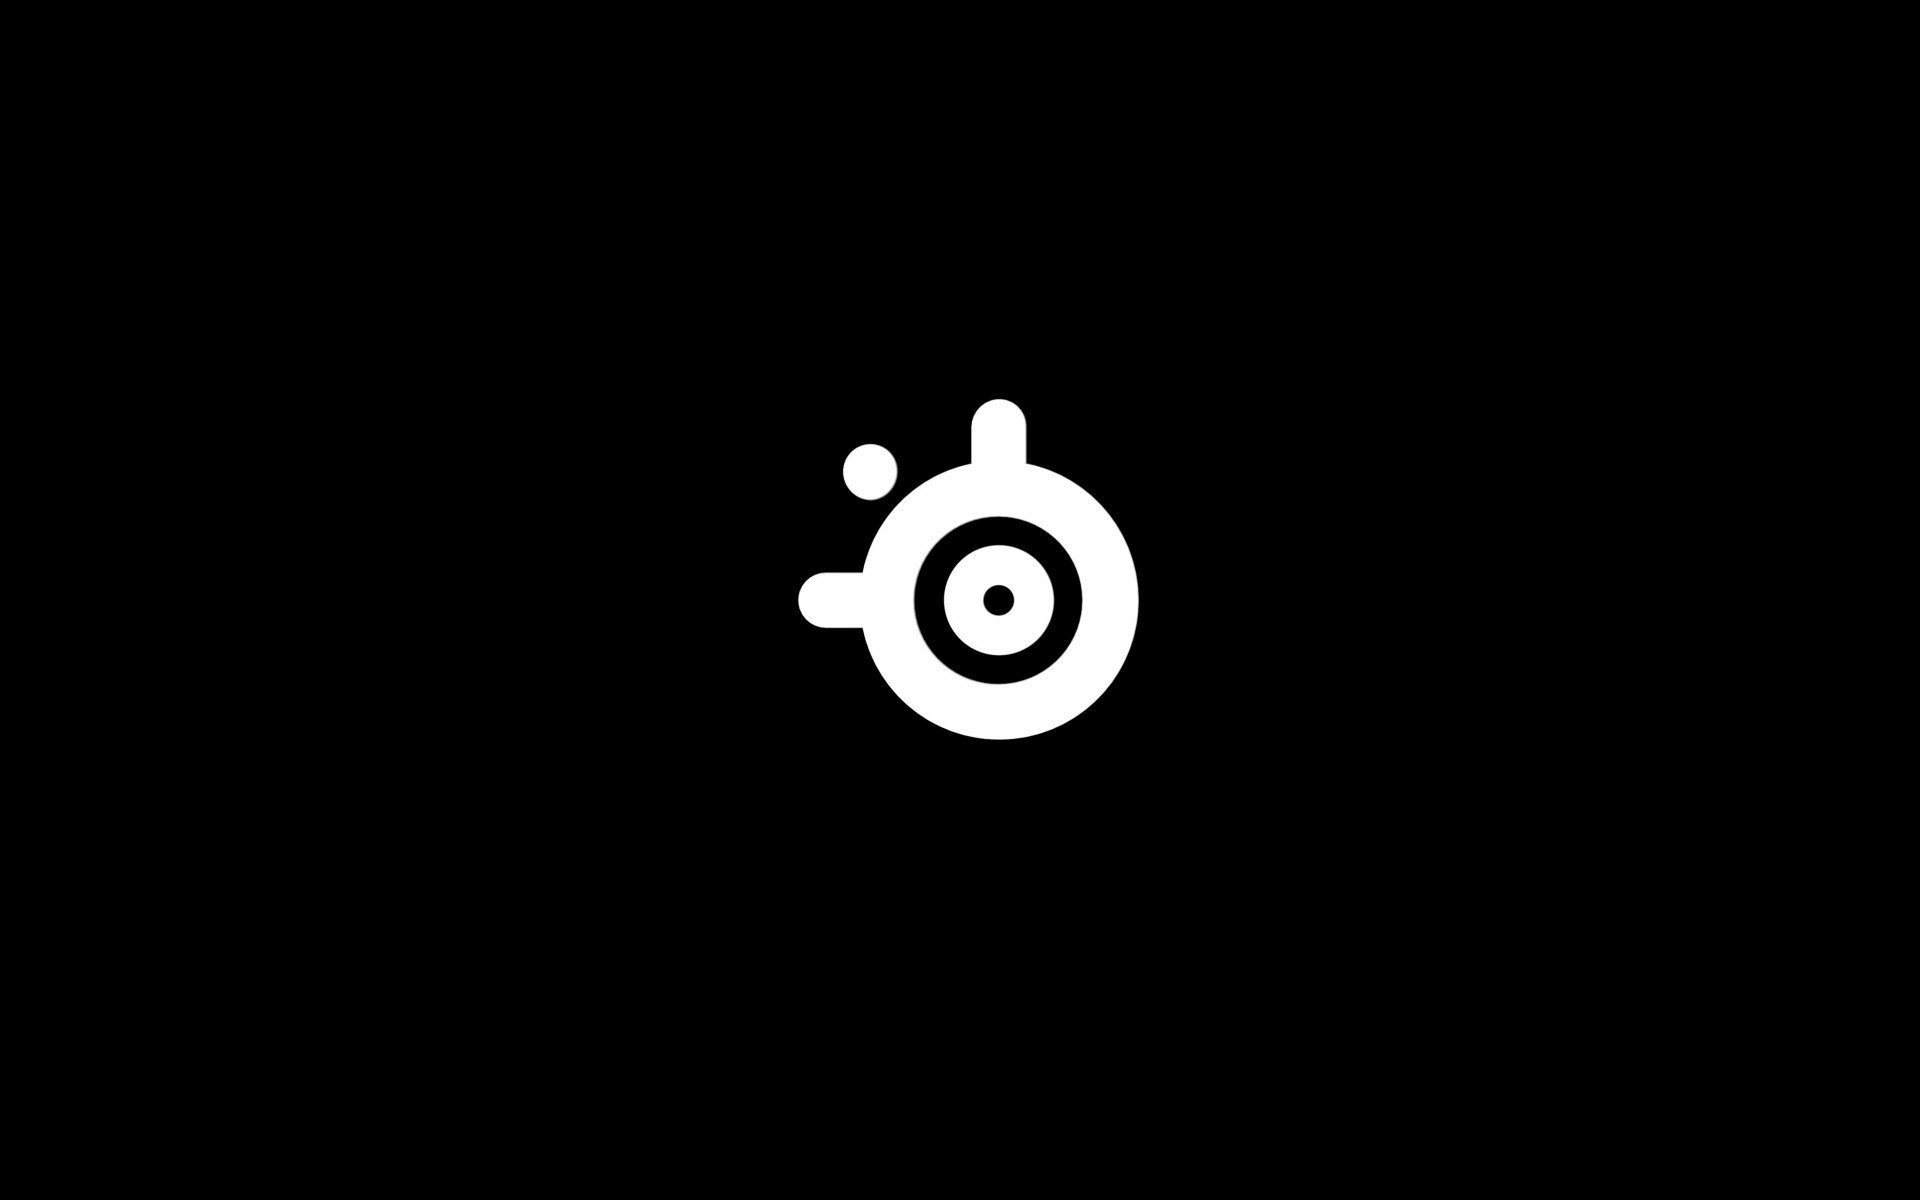 Logo, SteelSeries, Pro Gaming, Фон, Логотип, SS, Gaming Gear, Minimalism